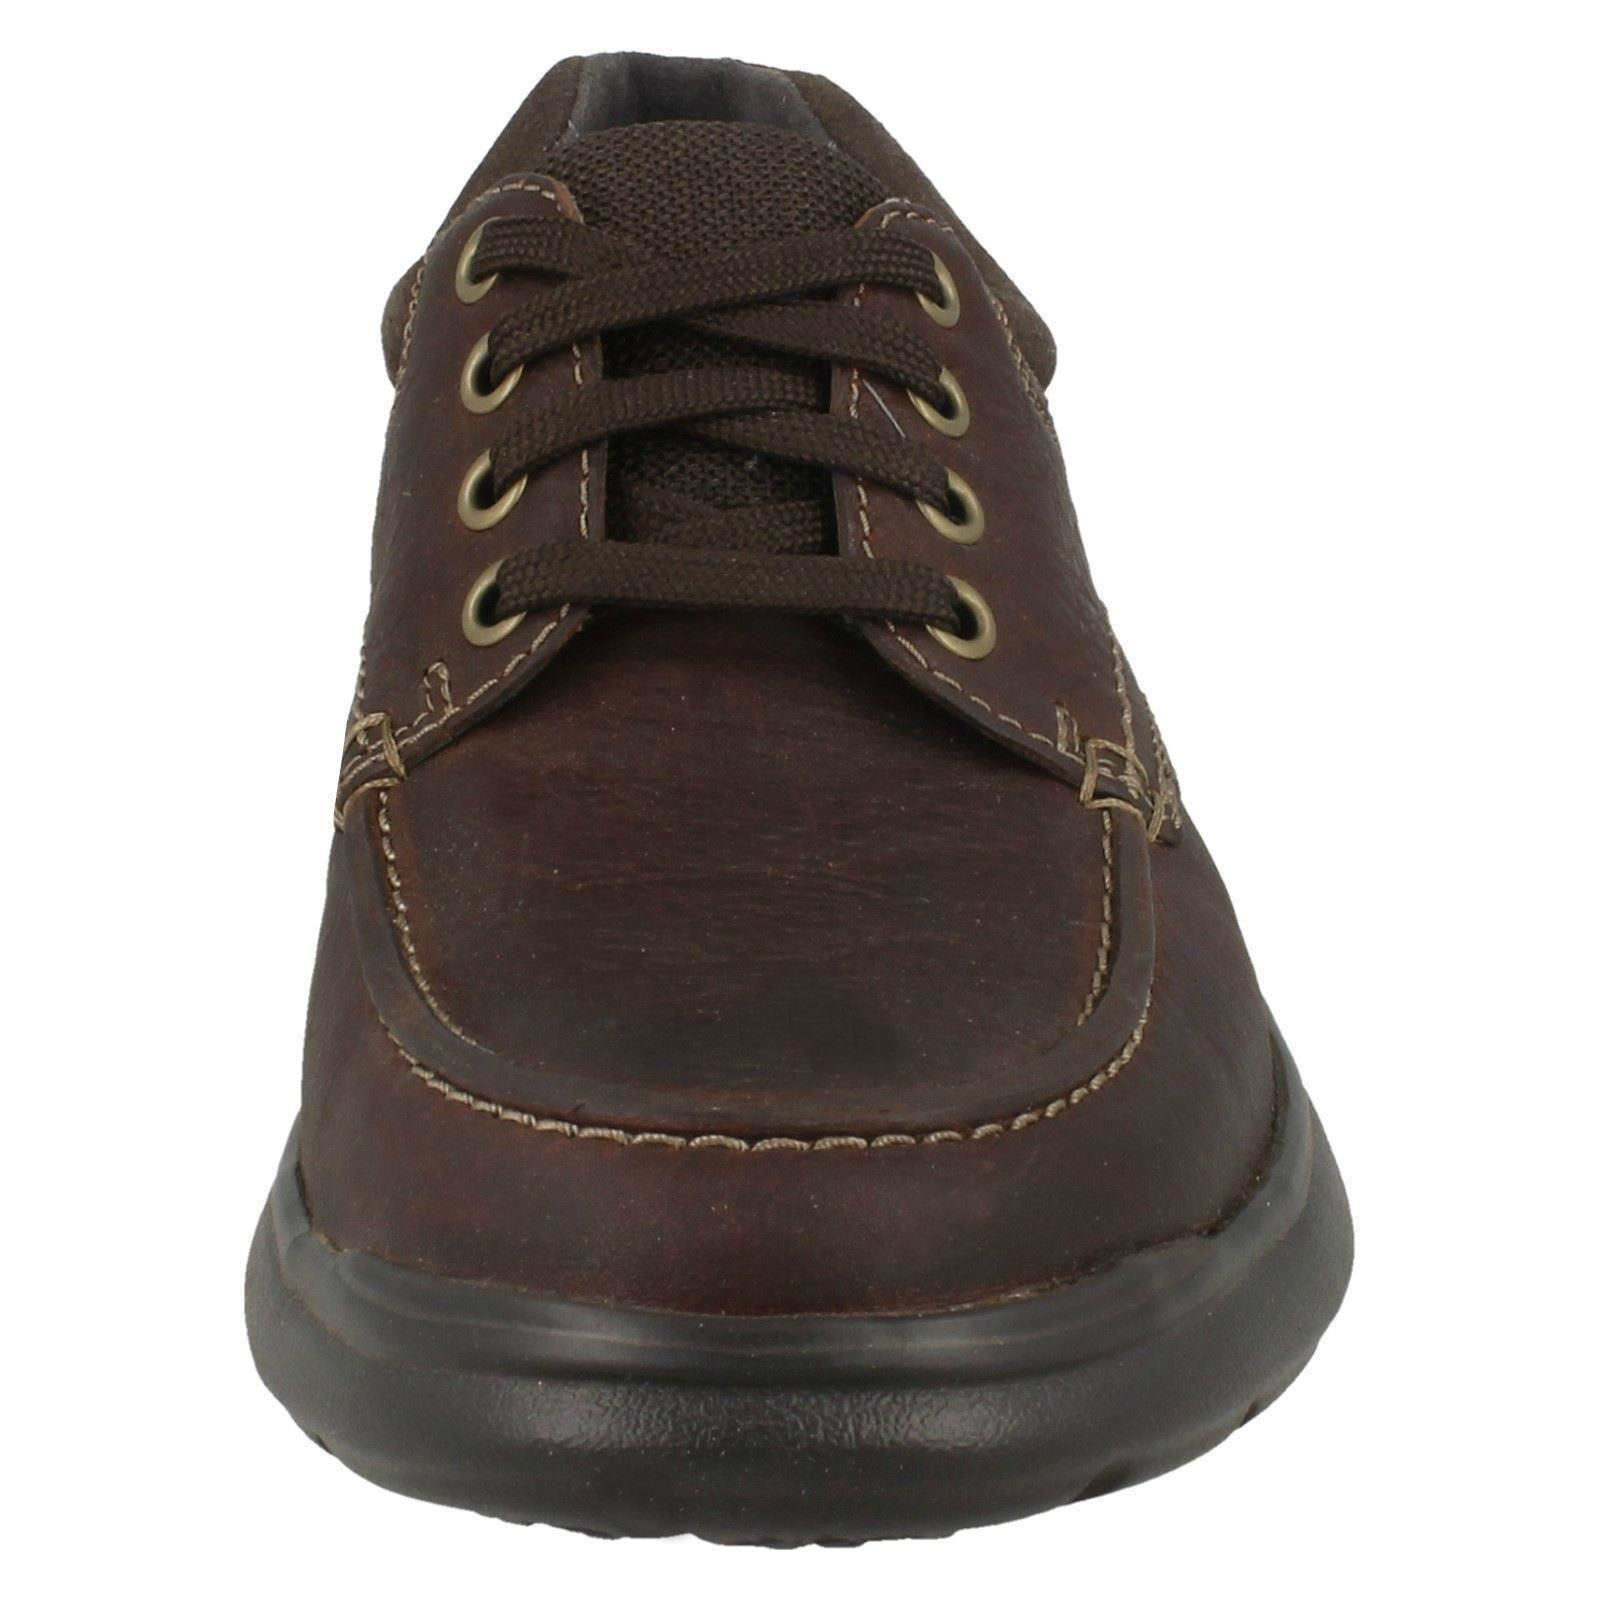 Mens Clarks Casual Shoes /'Cotrell Edge/'